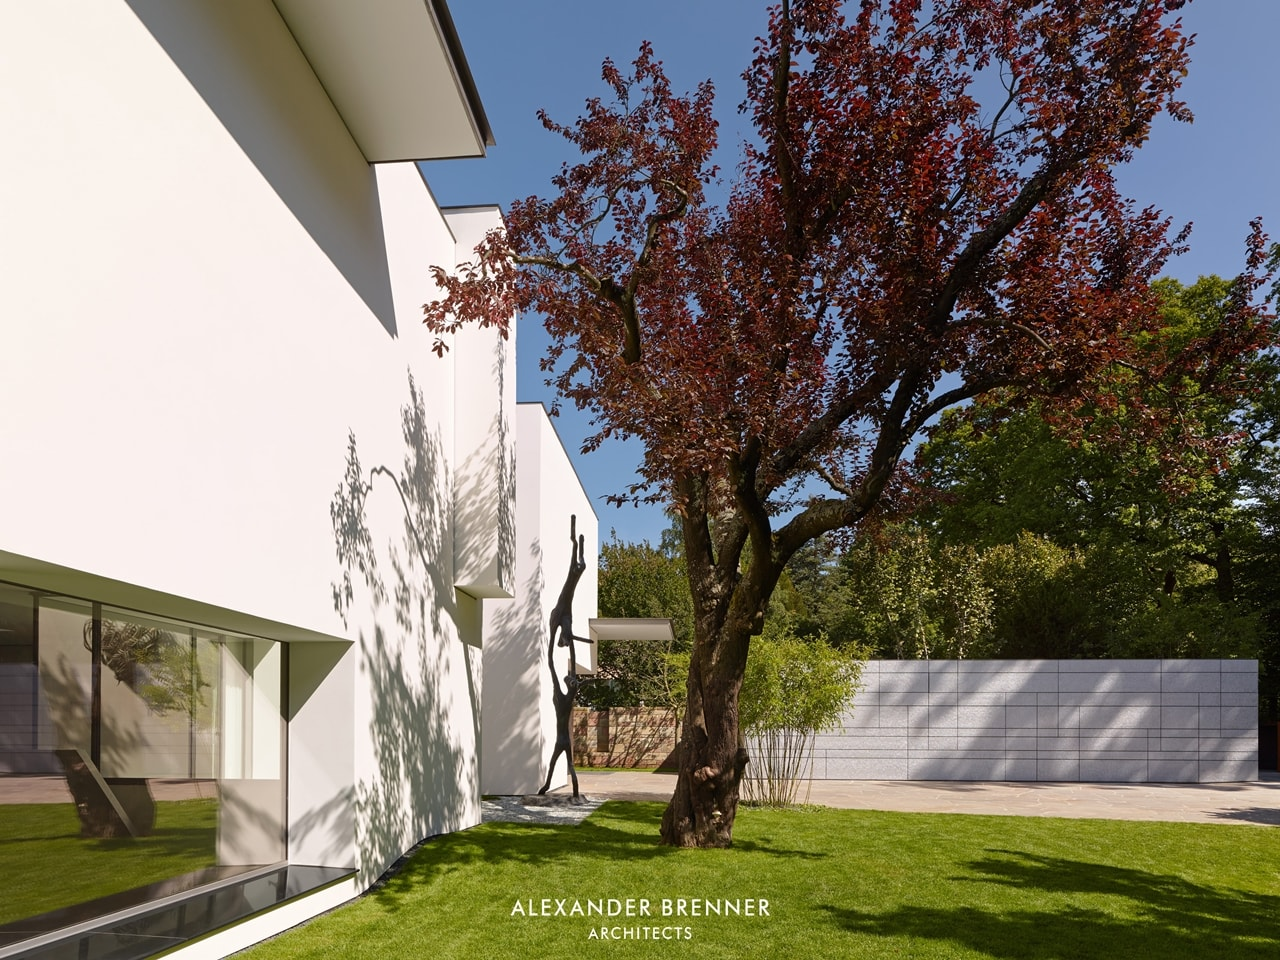 Garden in the modern villa by Alexander Brenner